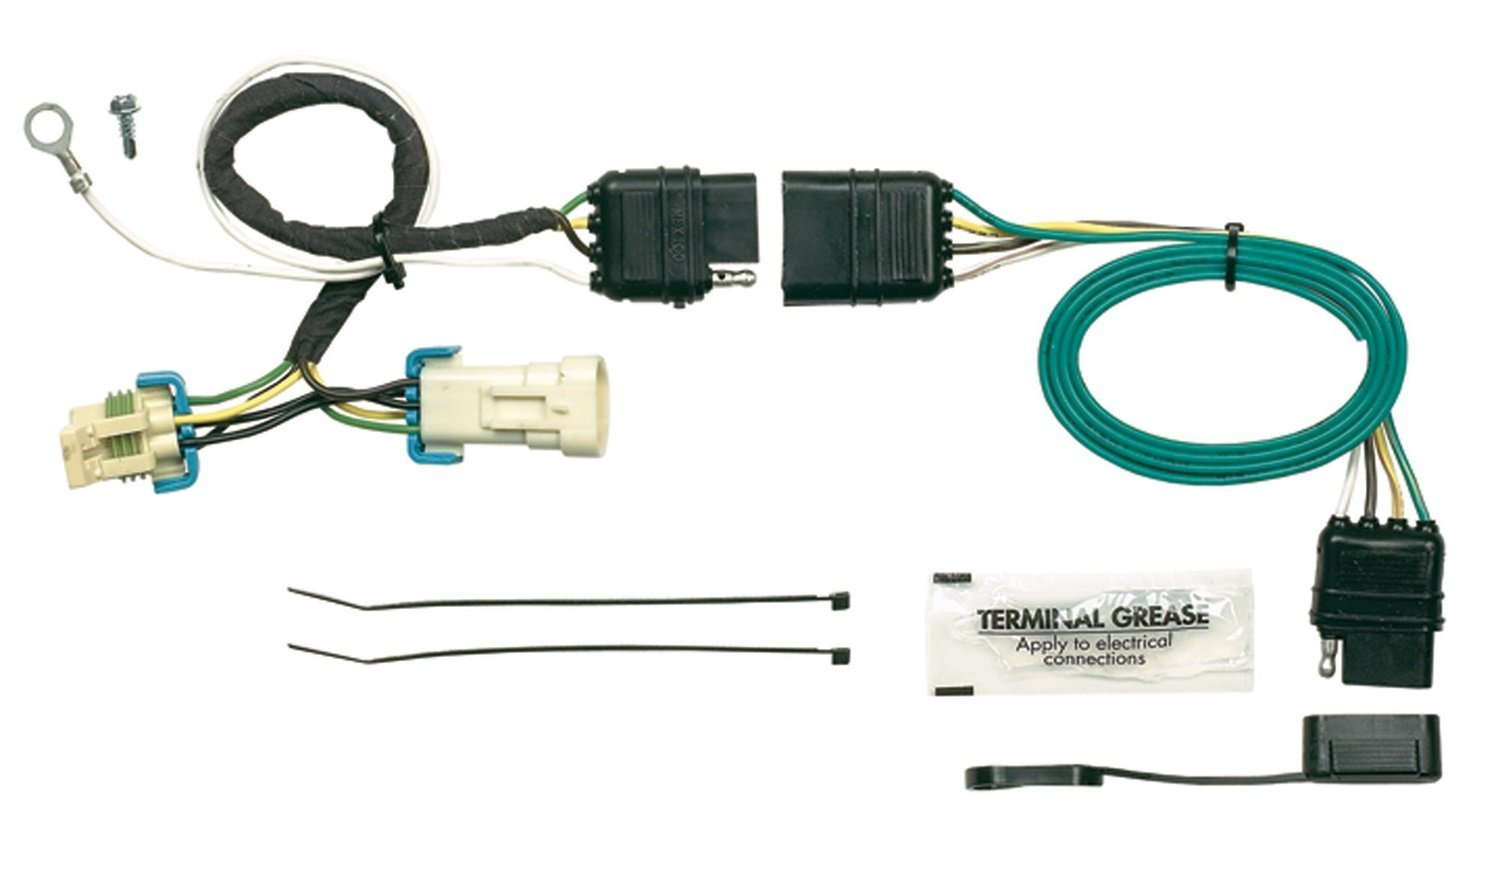 Isuzu Trailer Wiring Connector Circuit Diagram Symbols Harness Hopkins 41135 Plug In Simple Vehicle Kit T Connectors Allow Rh Walmart Com 4 Pin